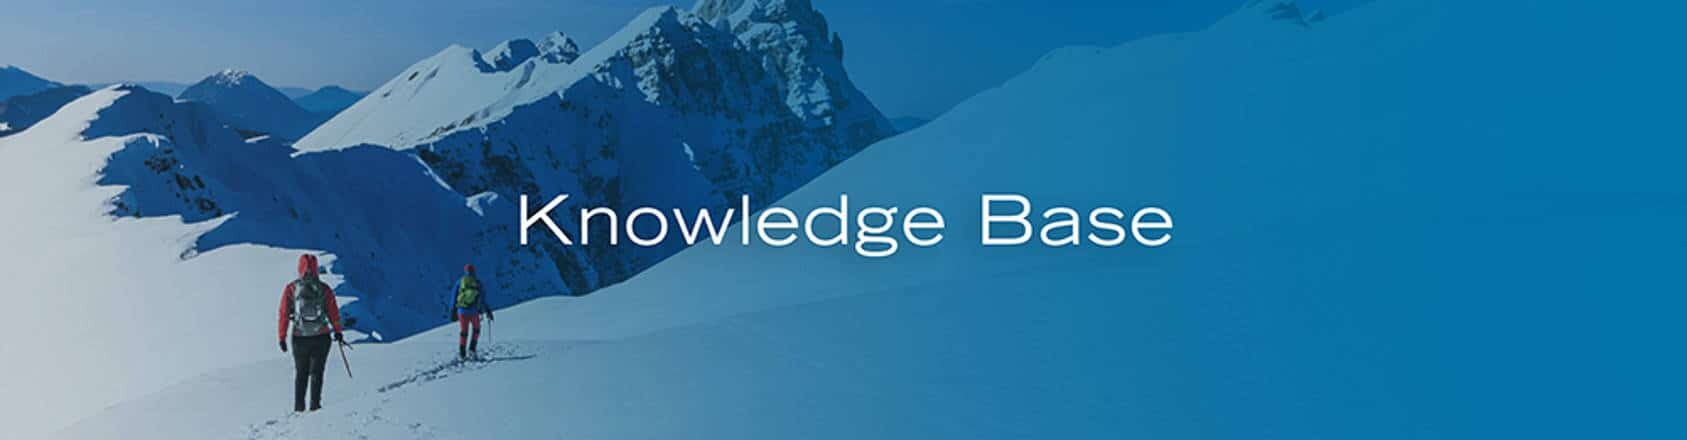 RefineM Knowledge Base